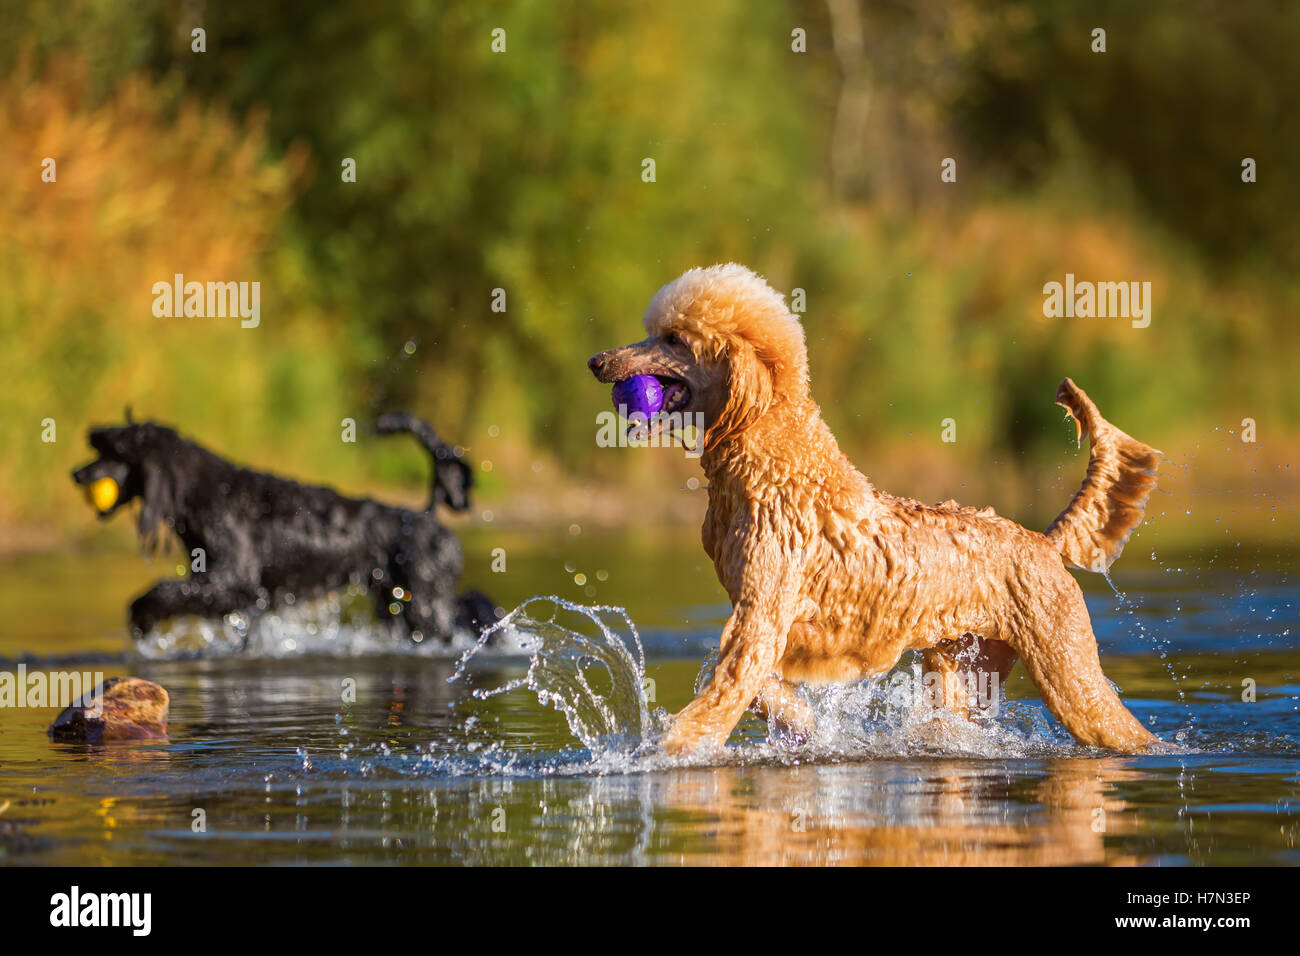 royal poodles playing in a lake in front of autumnal greenery - Stock Image